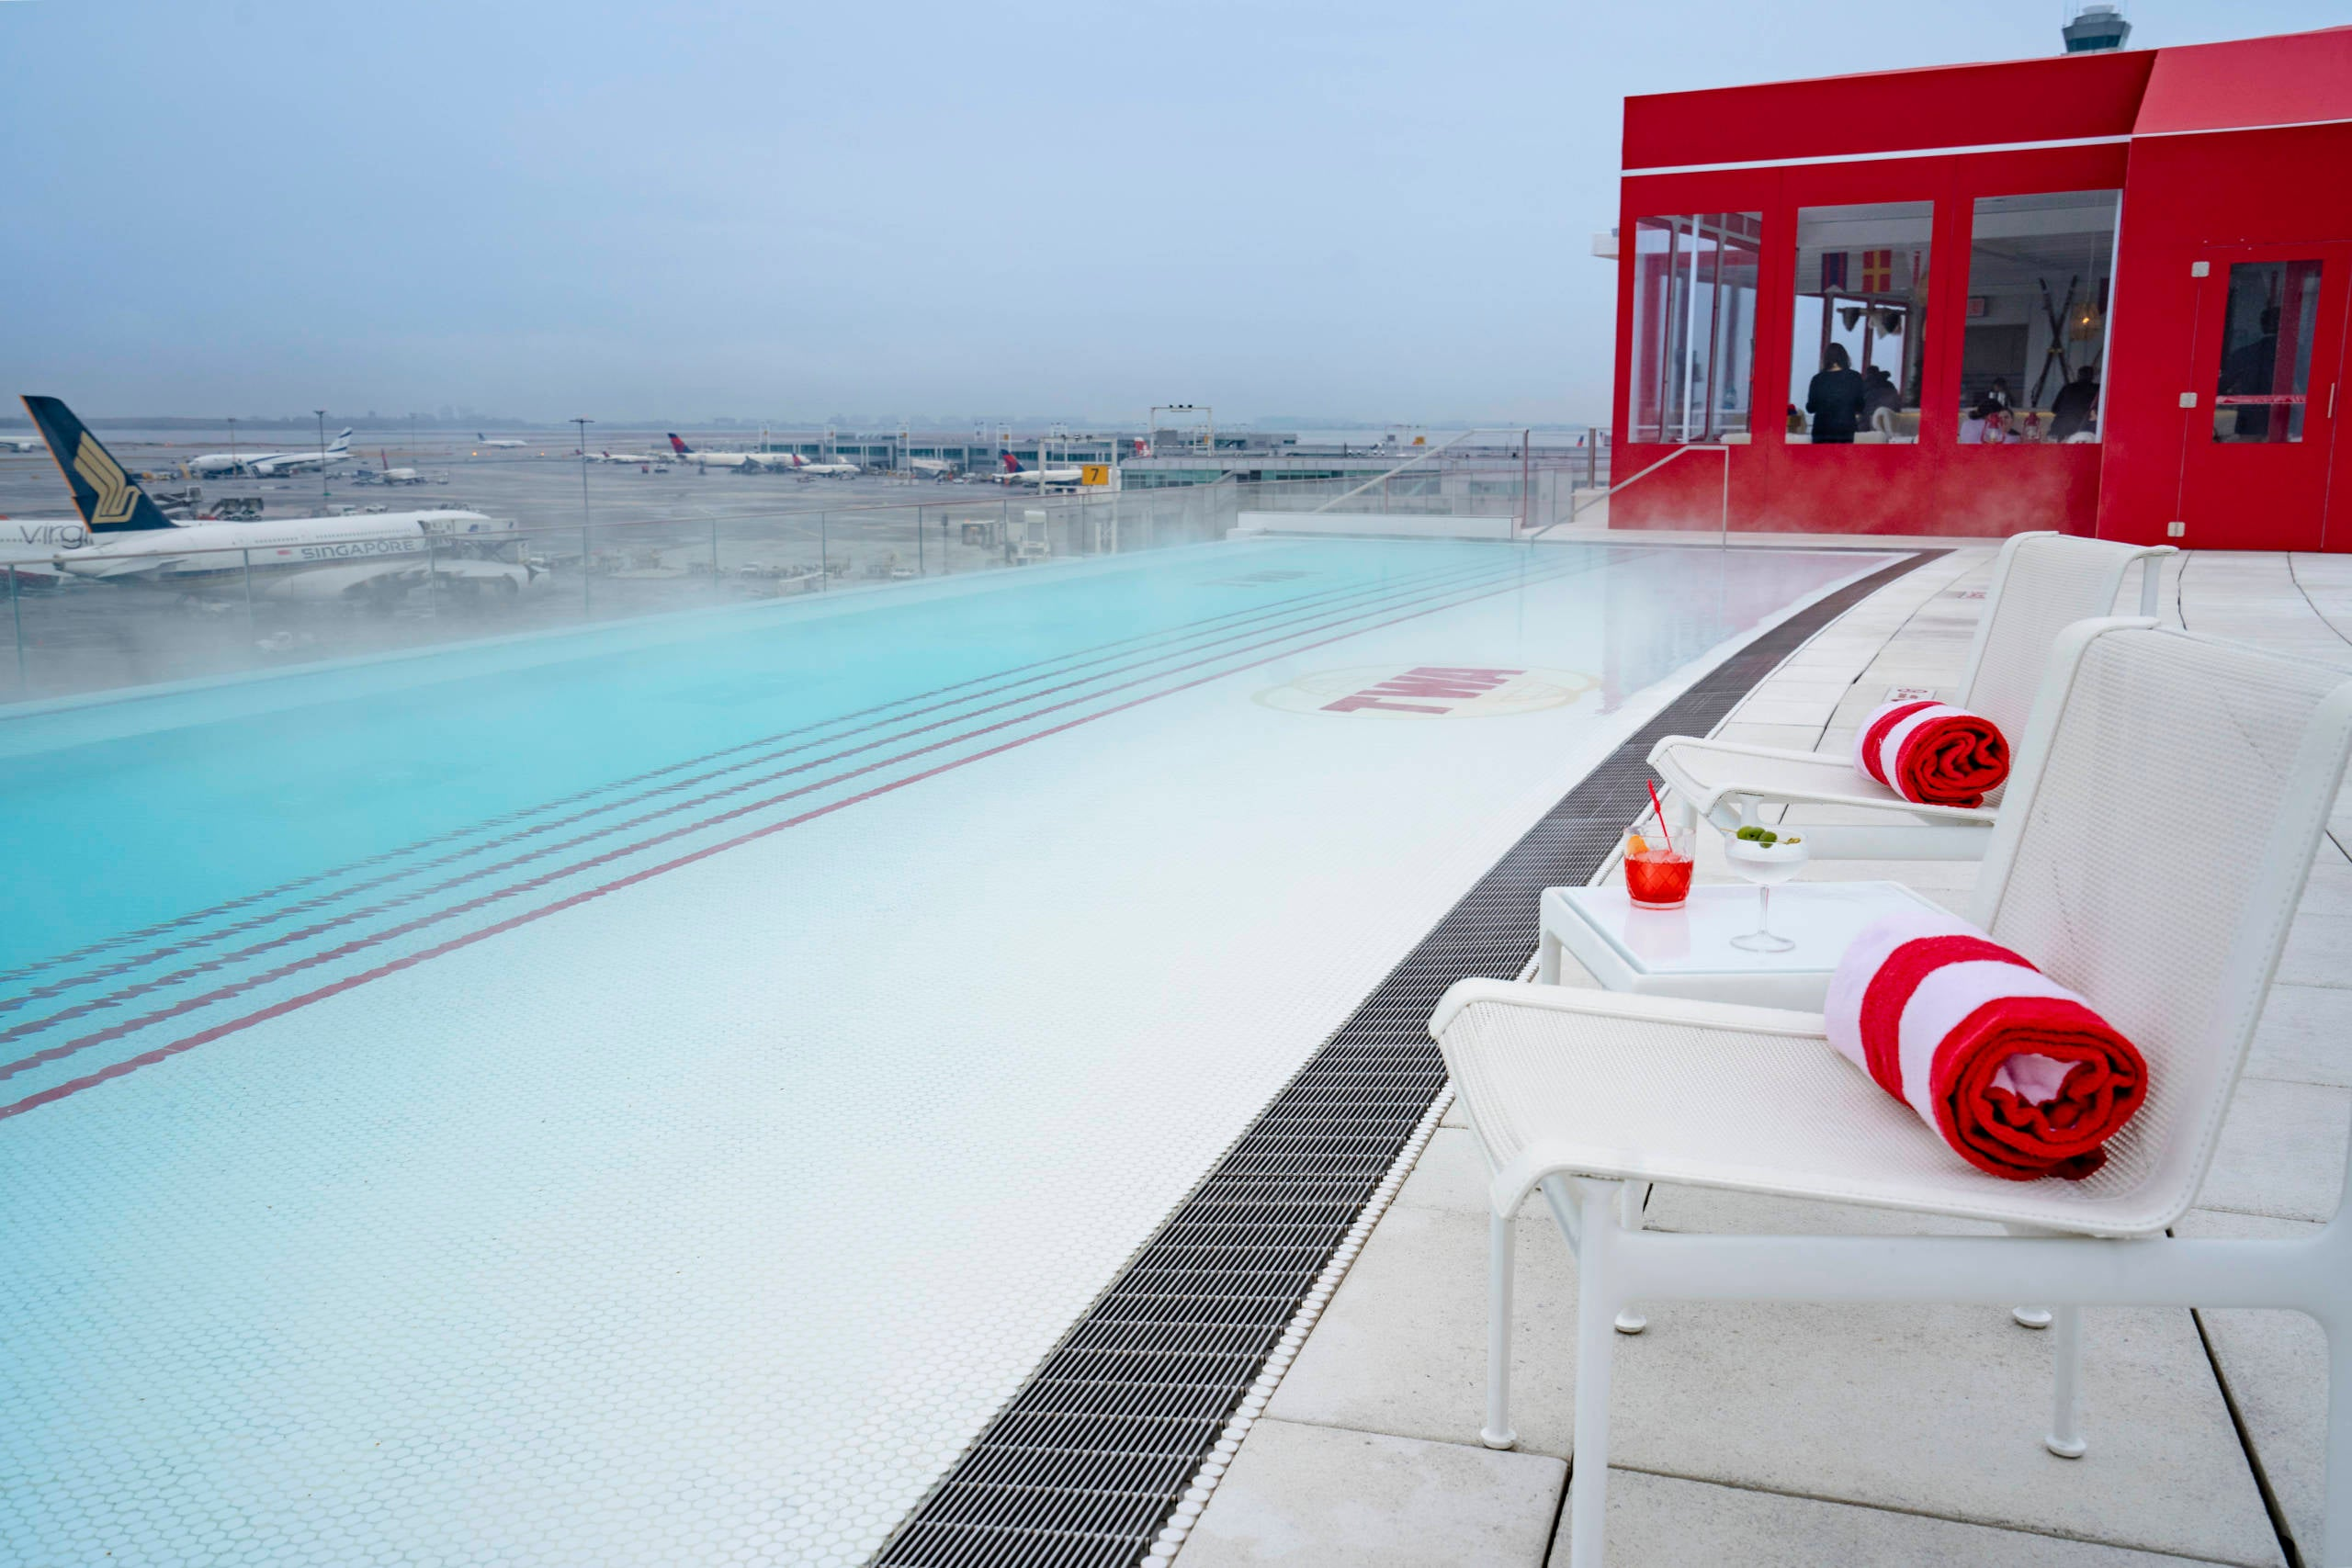 Sticker shock: TWA Hotel adds $50 per person fee plus tax to use that famous rooftop pool - The Points Guy